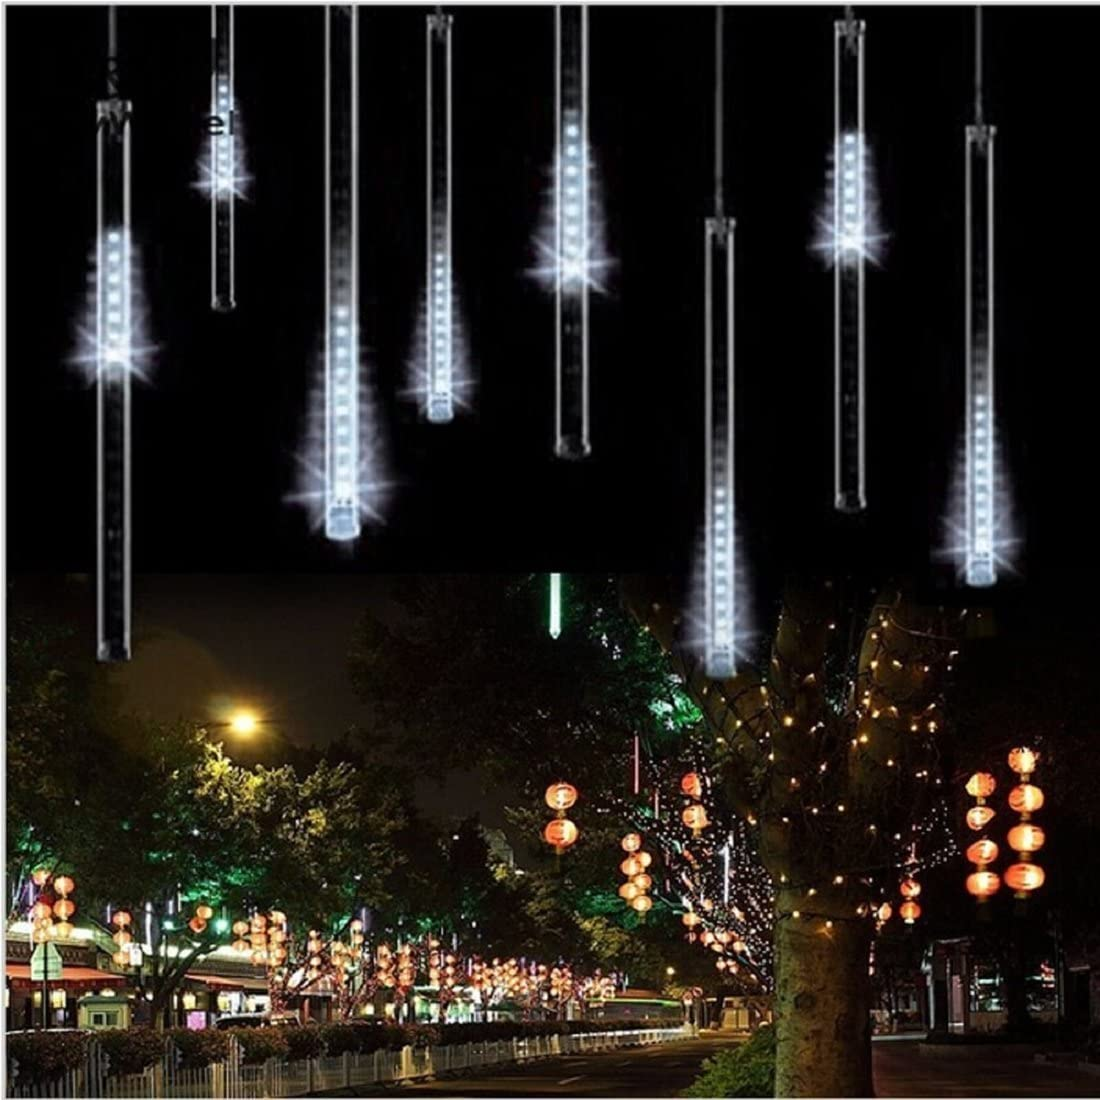 Aukora Rain Drop Lights, LED Meteor Shower Lights 11.8 inch 8 Tubes 144leds, Icicle Snow Falling Lights for Xmas Wedding Party Holiday Garden Tree Christmas Thanksgiving Decoration Outdoor (White)